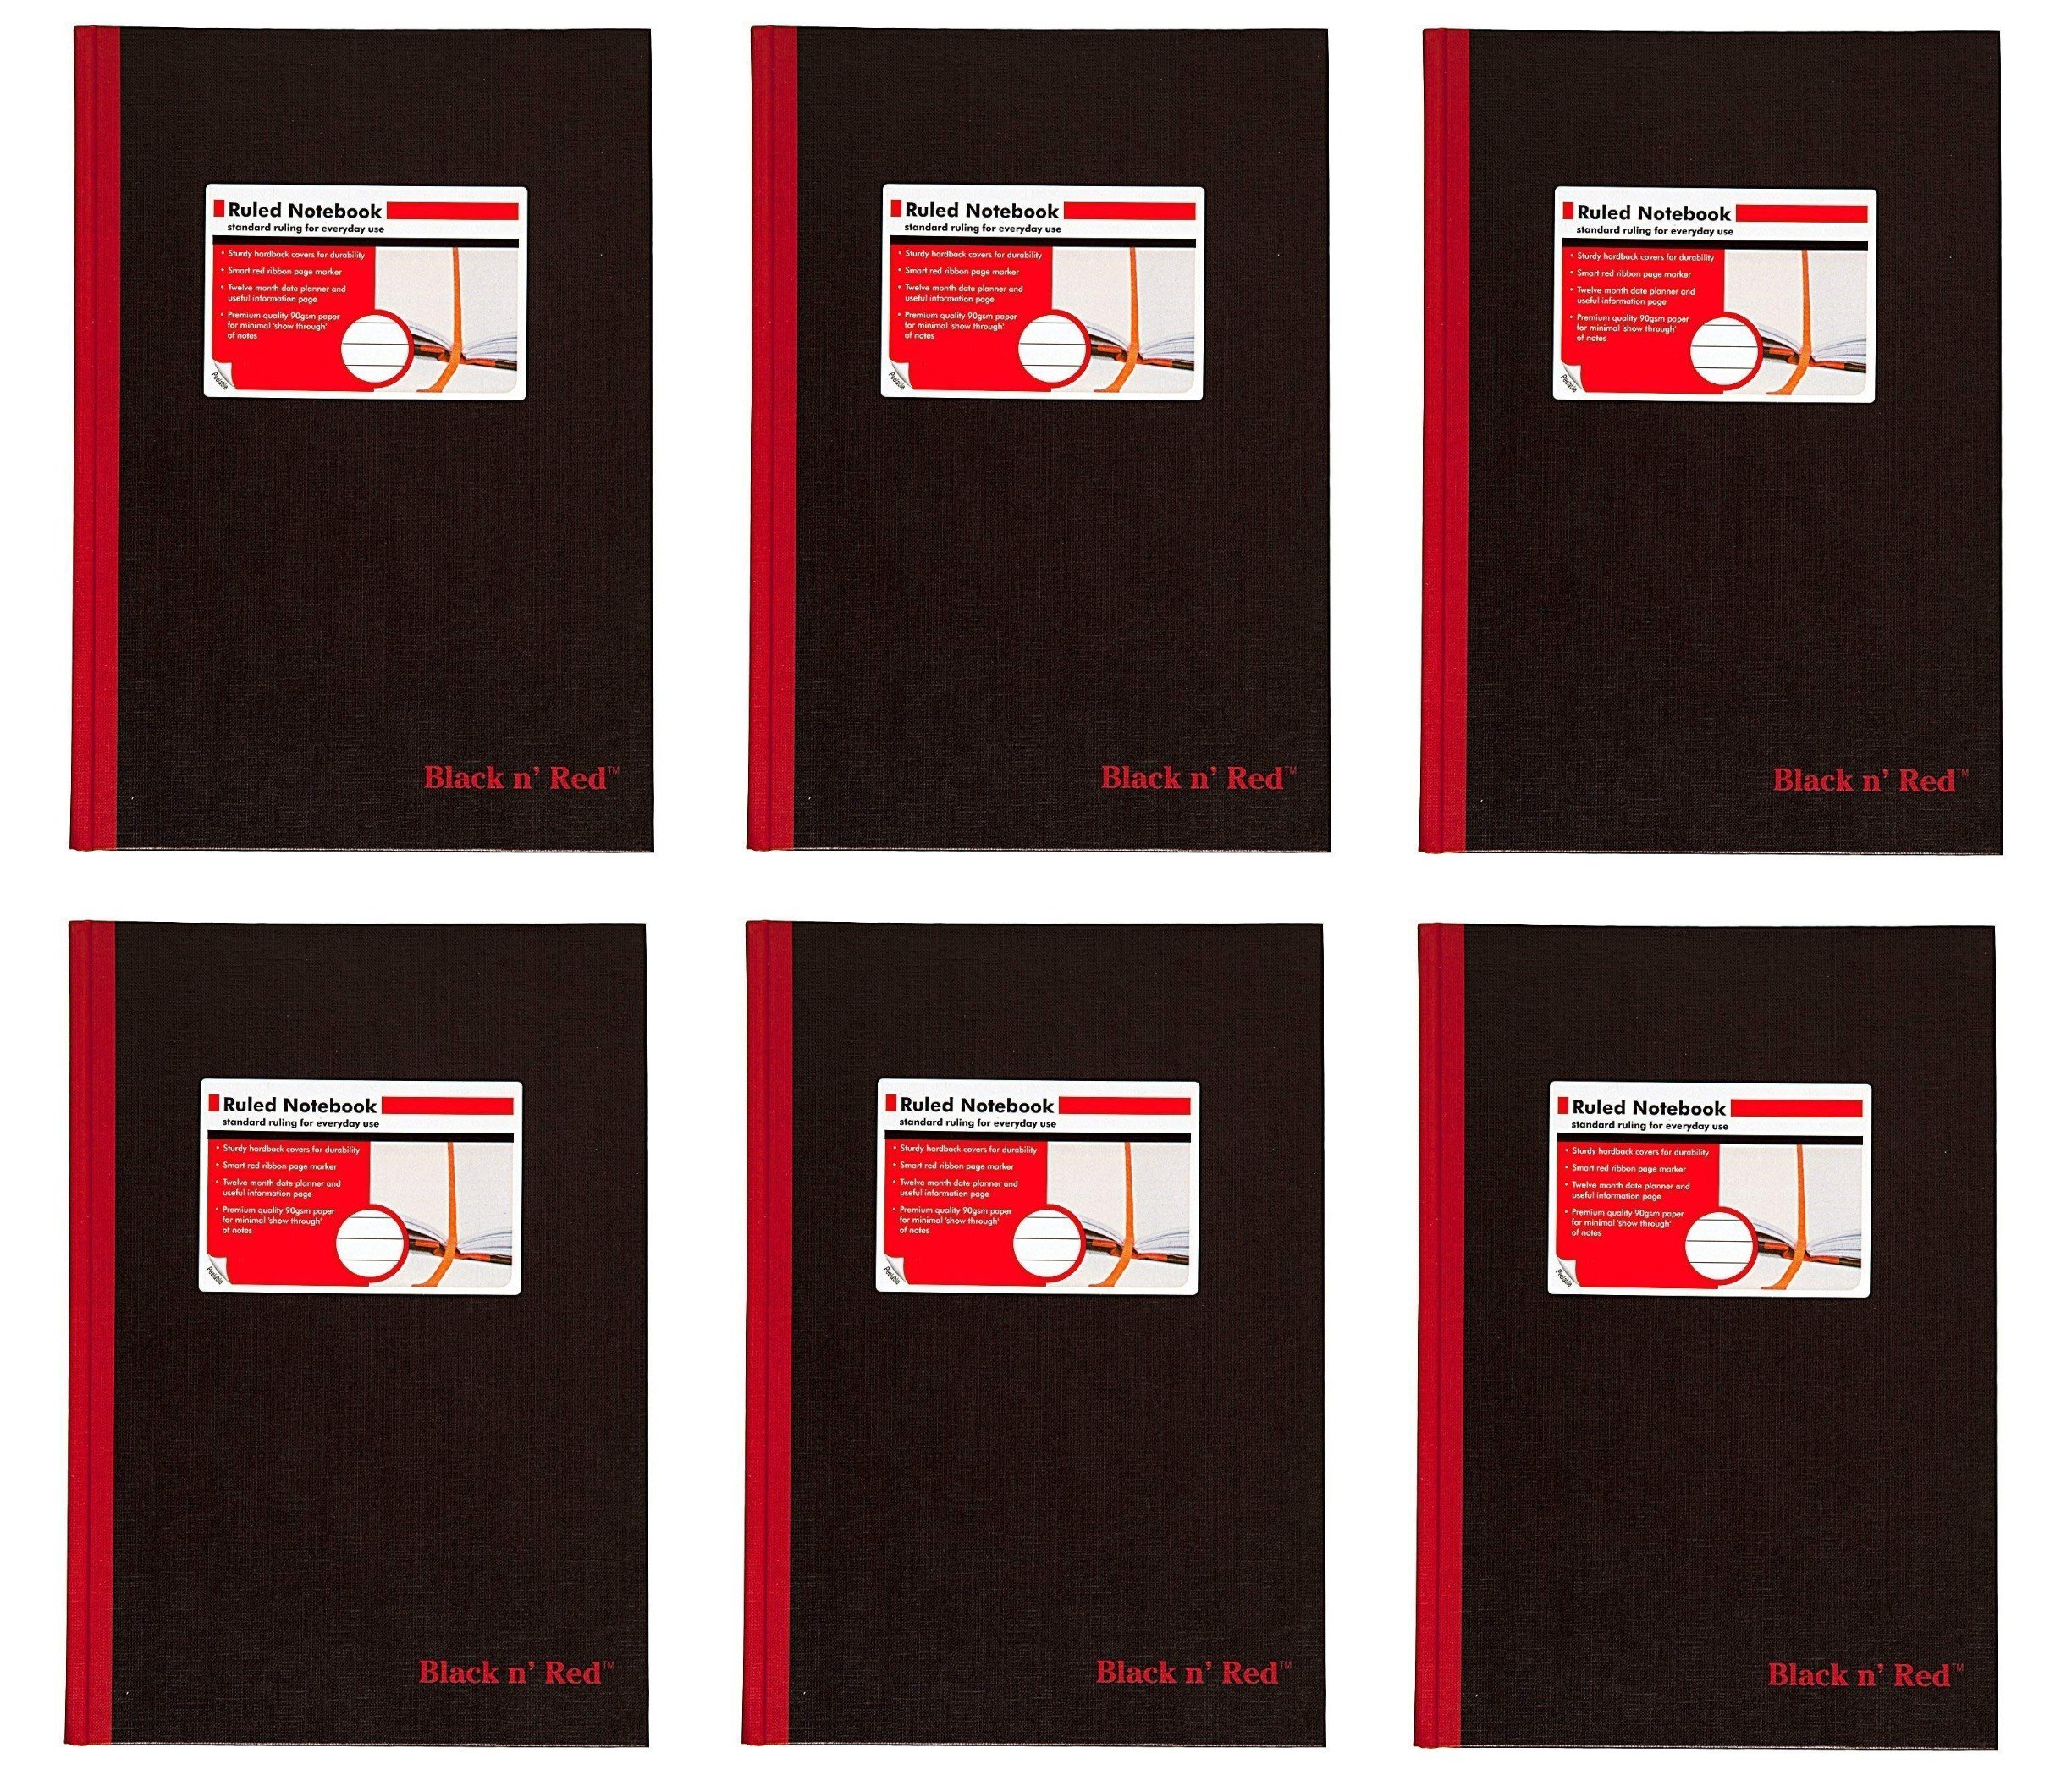 CASE OF 6 Black n' Red Hardcover Executive Notebook, 11.75 x 8.25 Inches, Black, 96 sheets/192 pages (D66174)